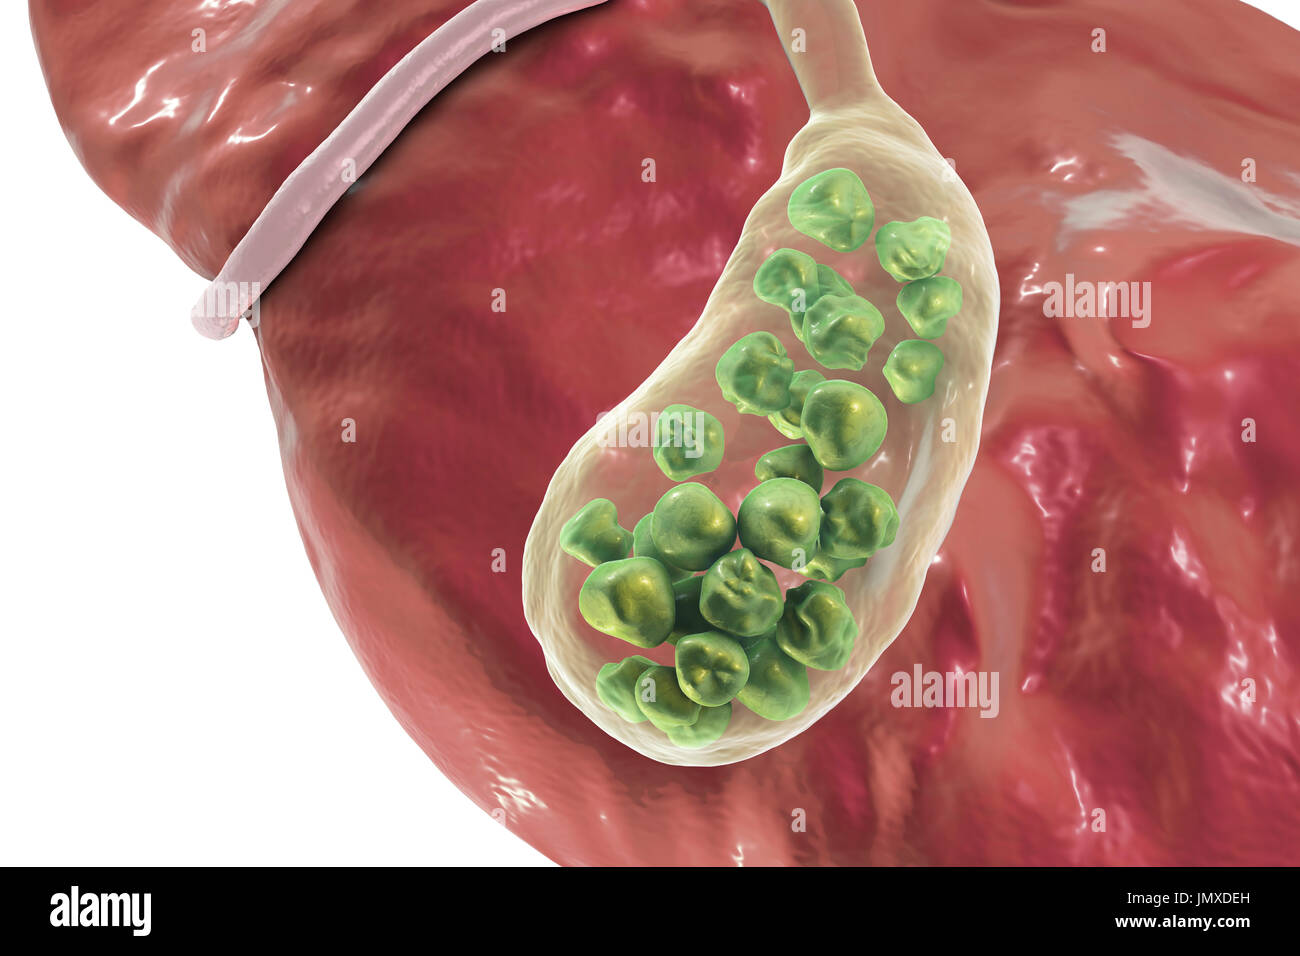 Gallstones Illustration Showing The Liver And Gallbladder With